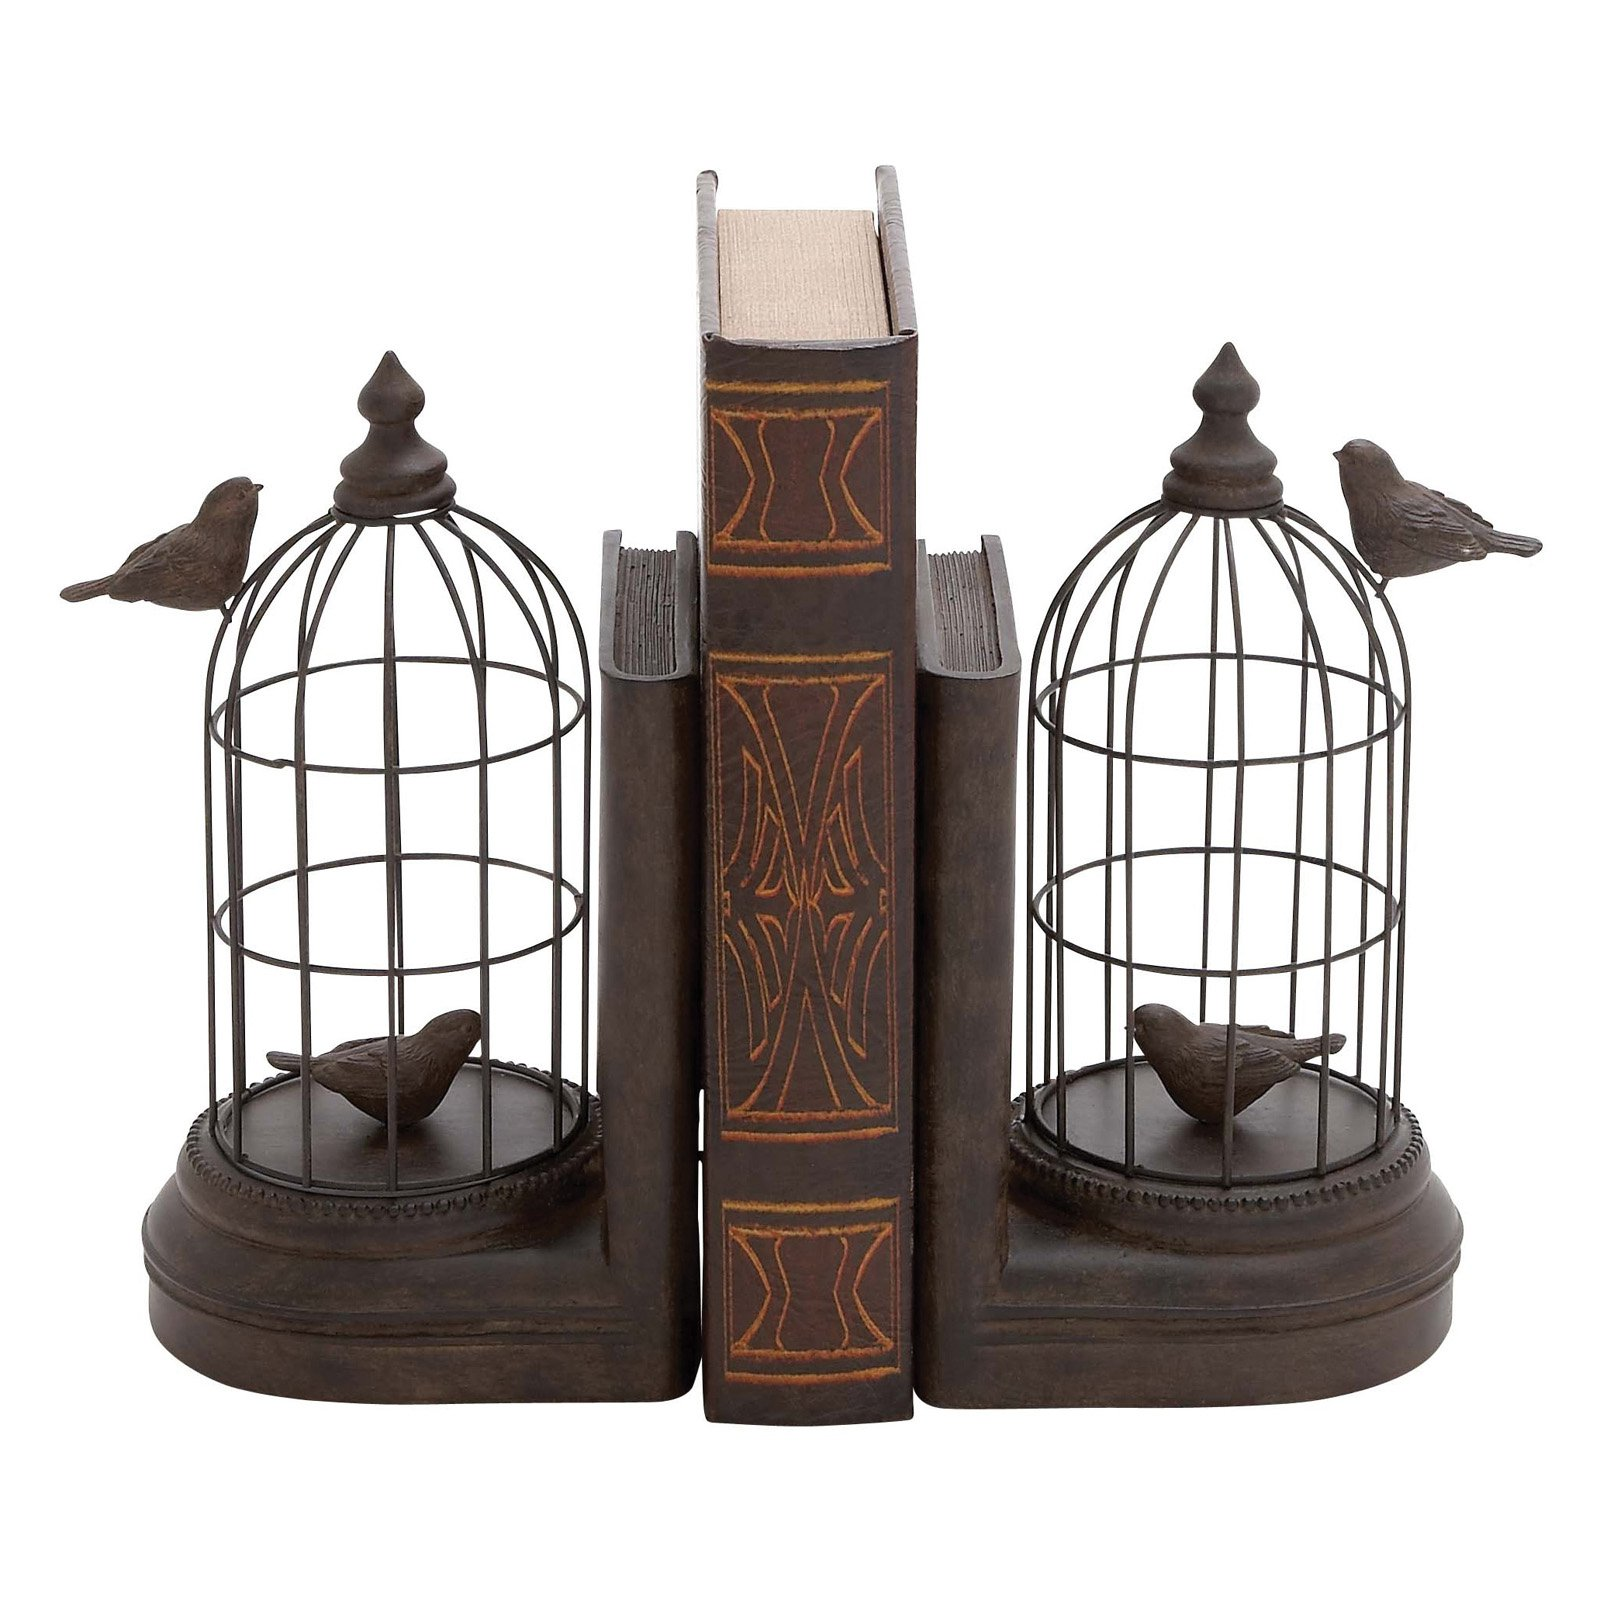 A Pair Of Metal And Poly Stone Bird Cage Bookend by Benzara